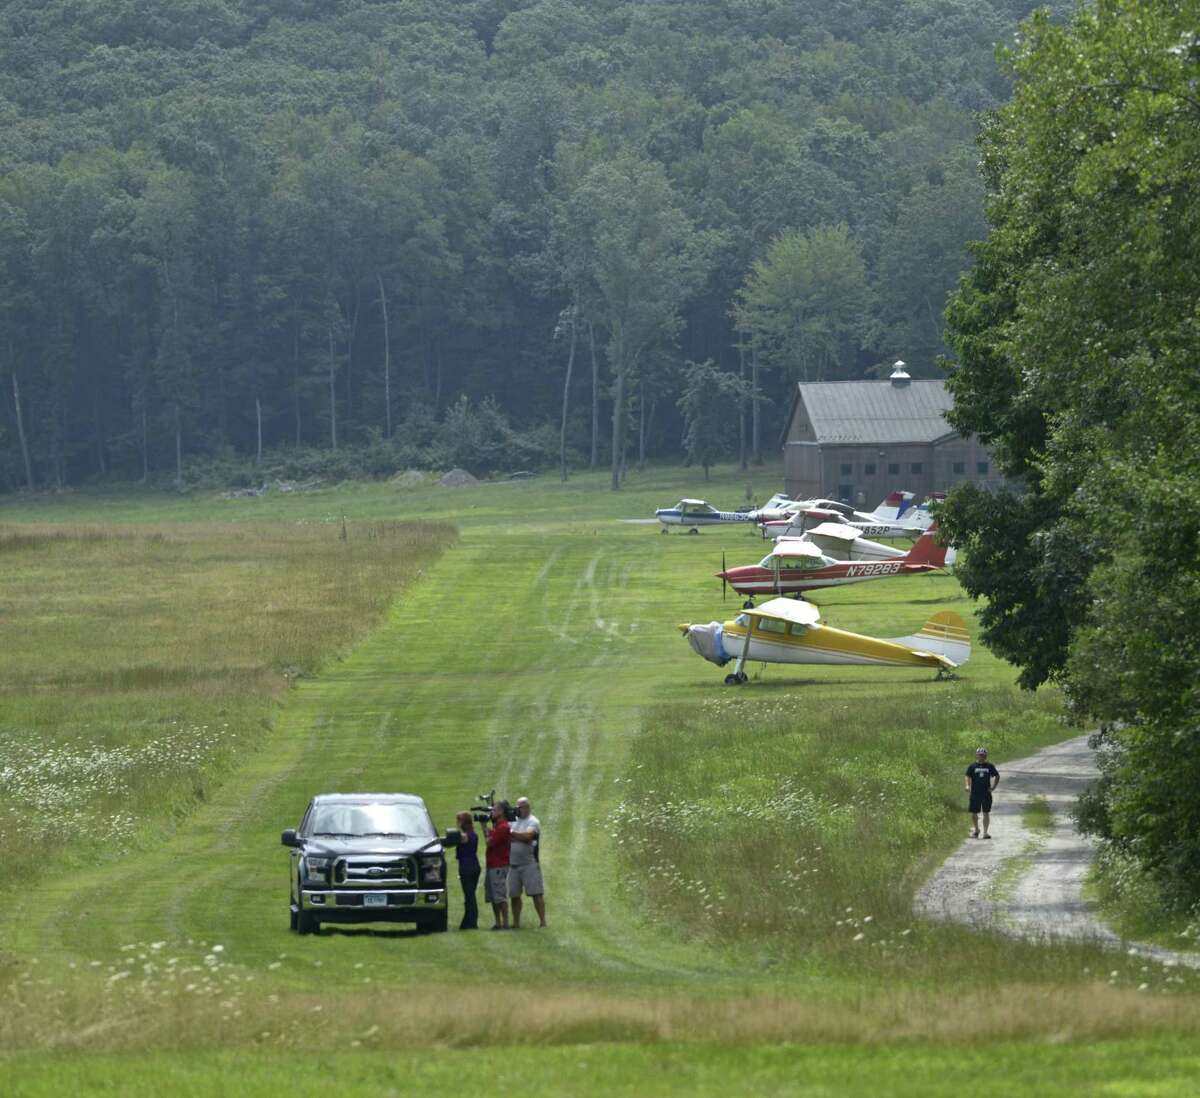 An airplane owner talks with the media at Candlelight Farms Airport where a plane from Danbury Municipal Airport crashed on, Friday, August 11, 2017, in New Milford, Conn.